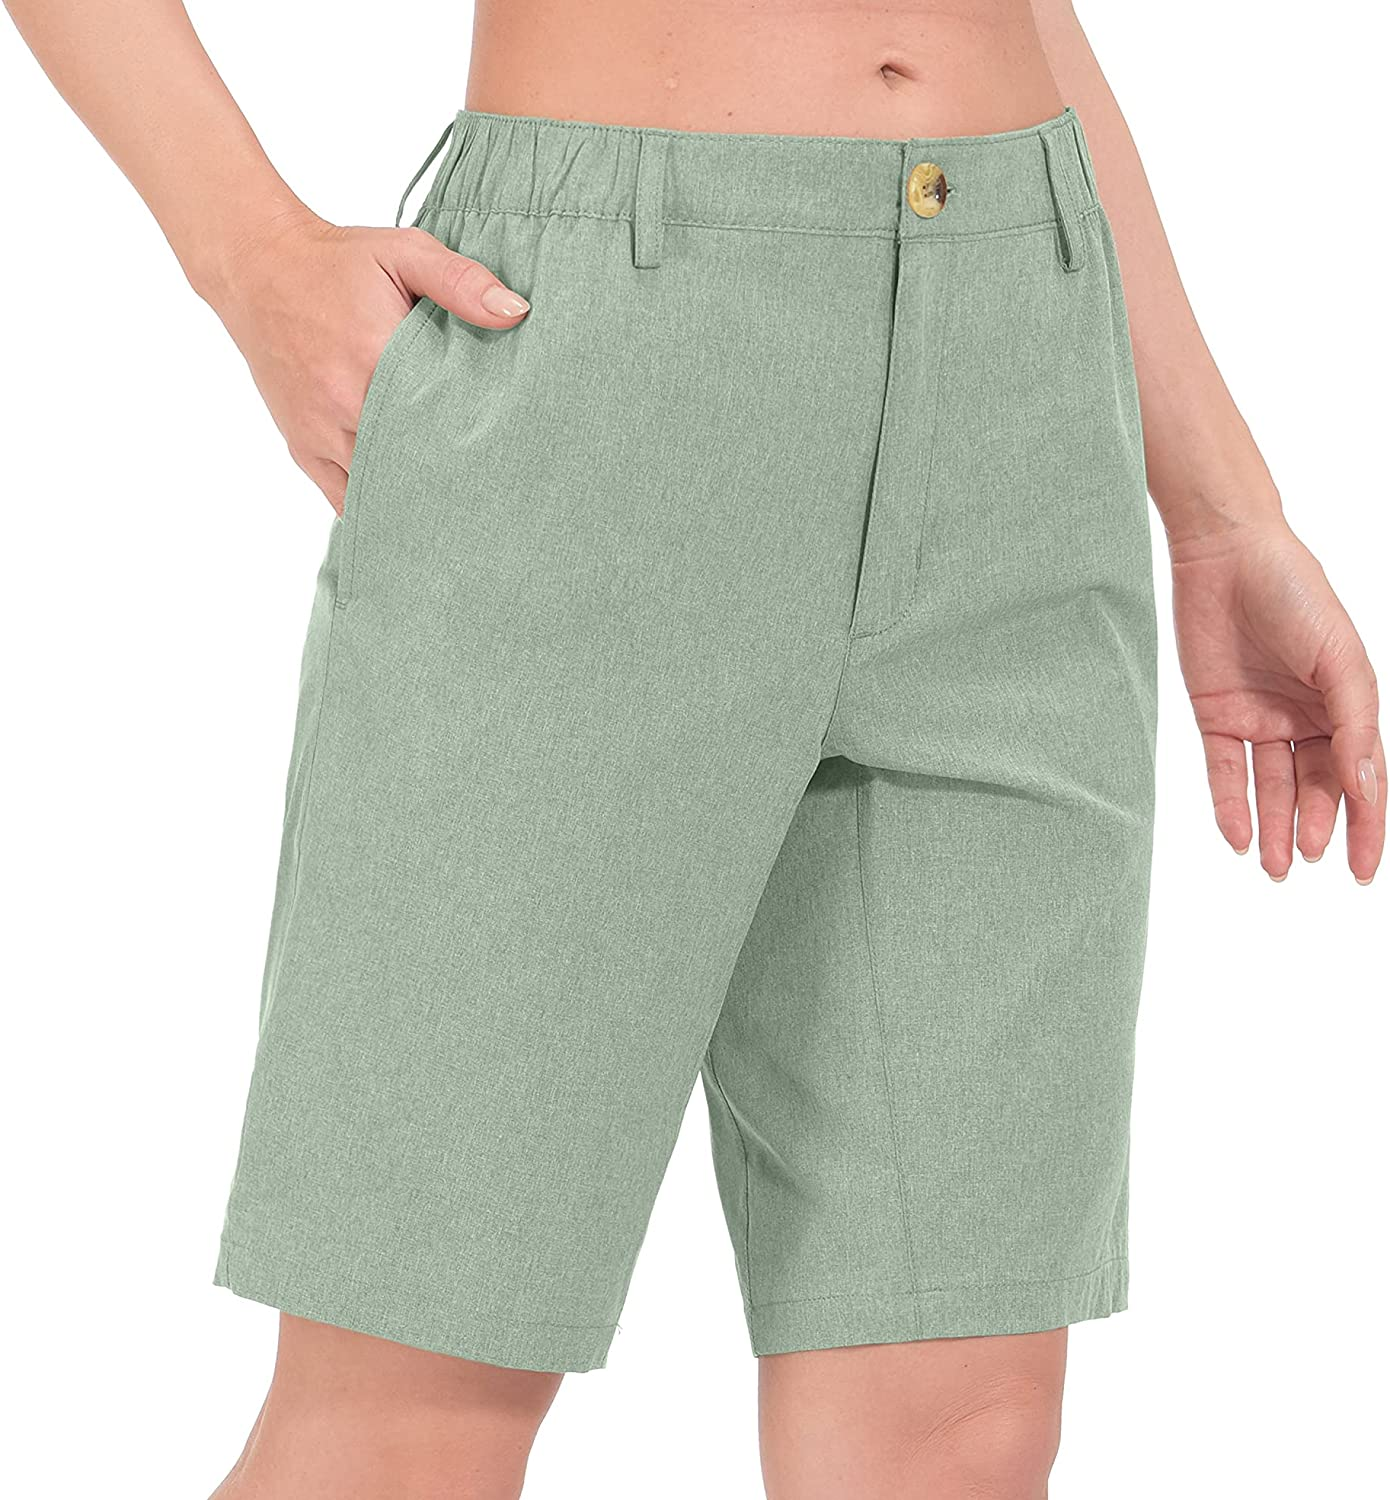 Little Donkey Fees free!! Andy Women's Topics on TV Bermuda Lightweight Stretch Quick Dry